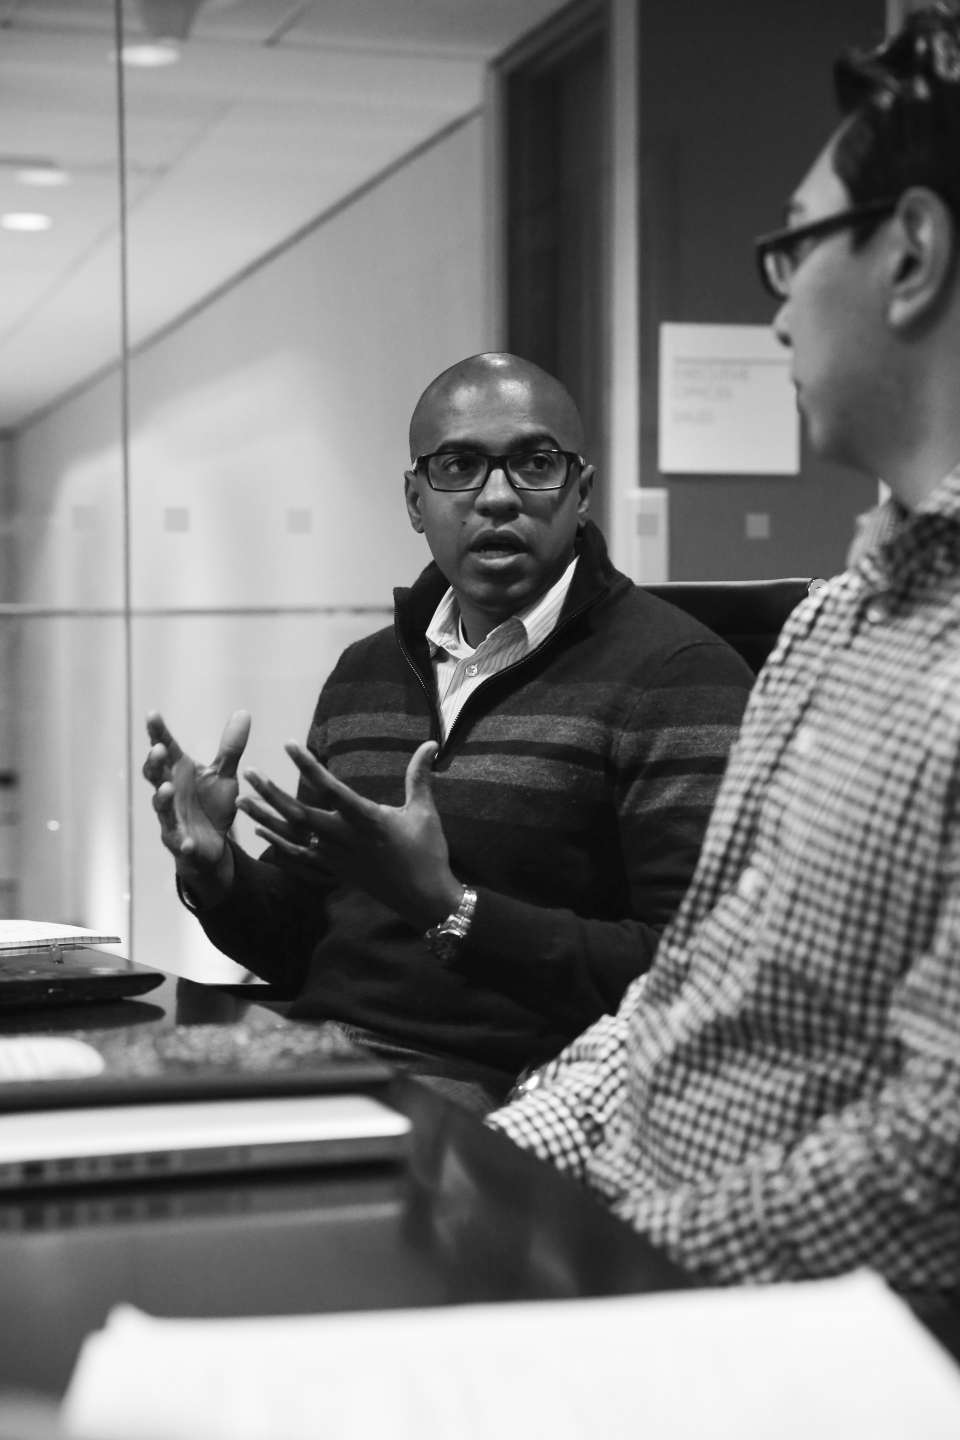 A young adult male in a sweater and glasses seated at a conference table talks to another male - photo shot in black and white.